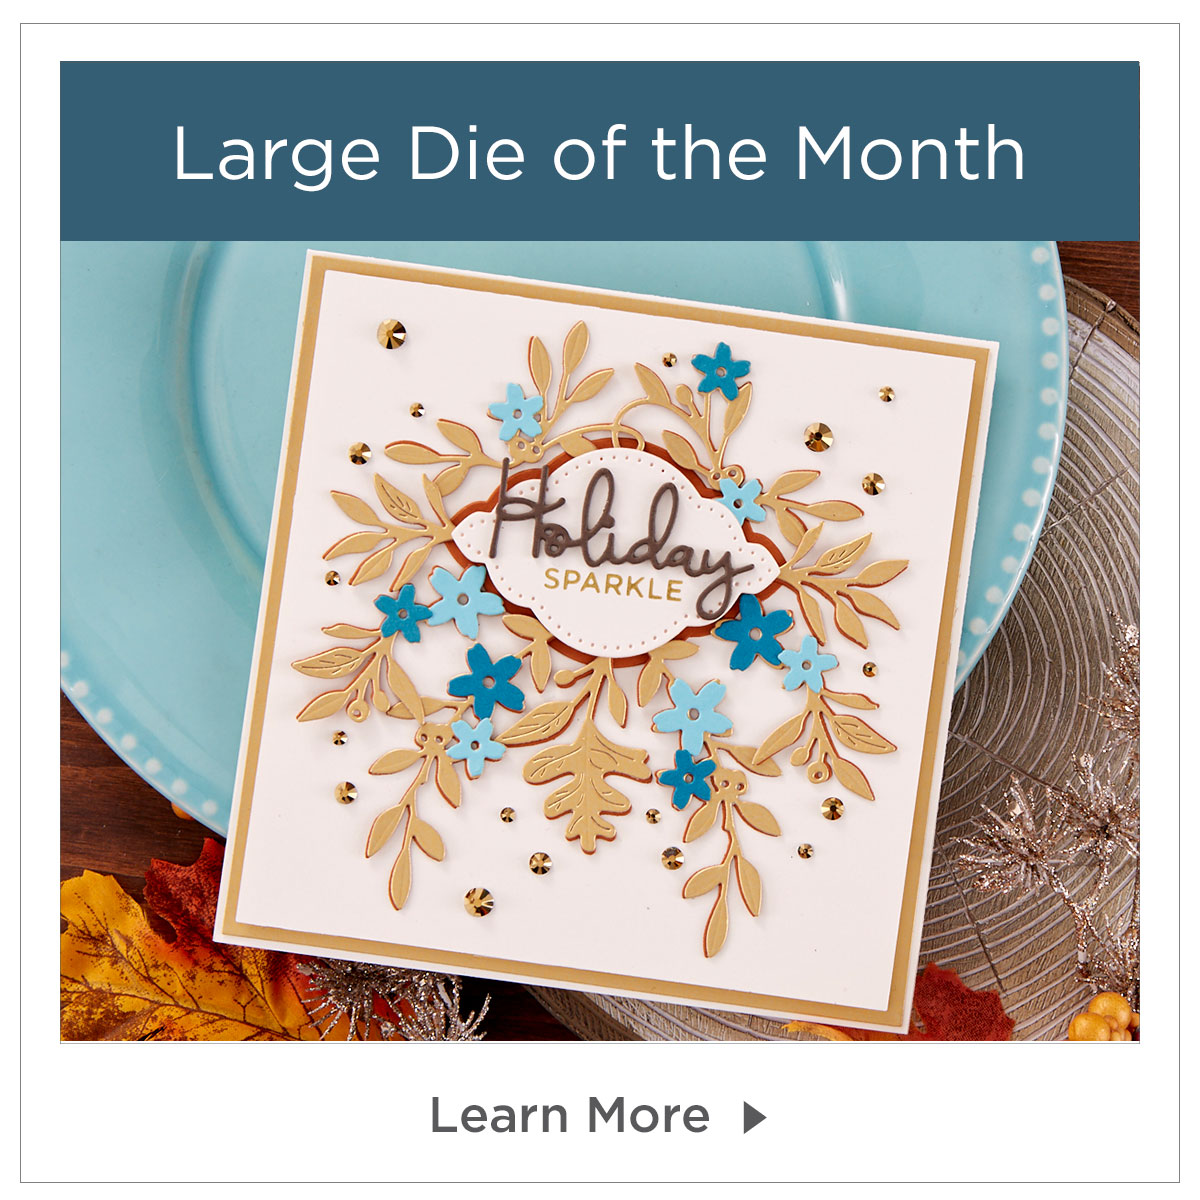 Large Die of the month